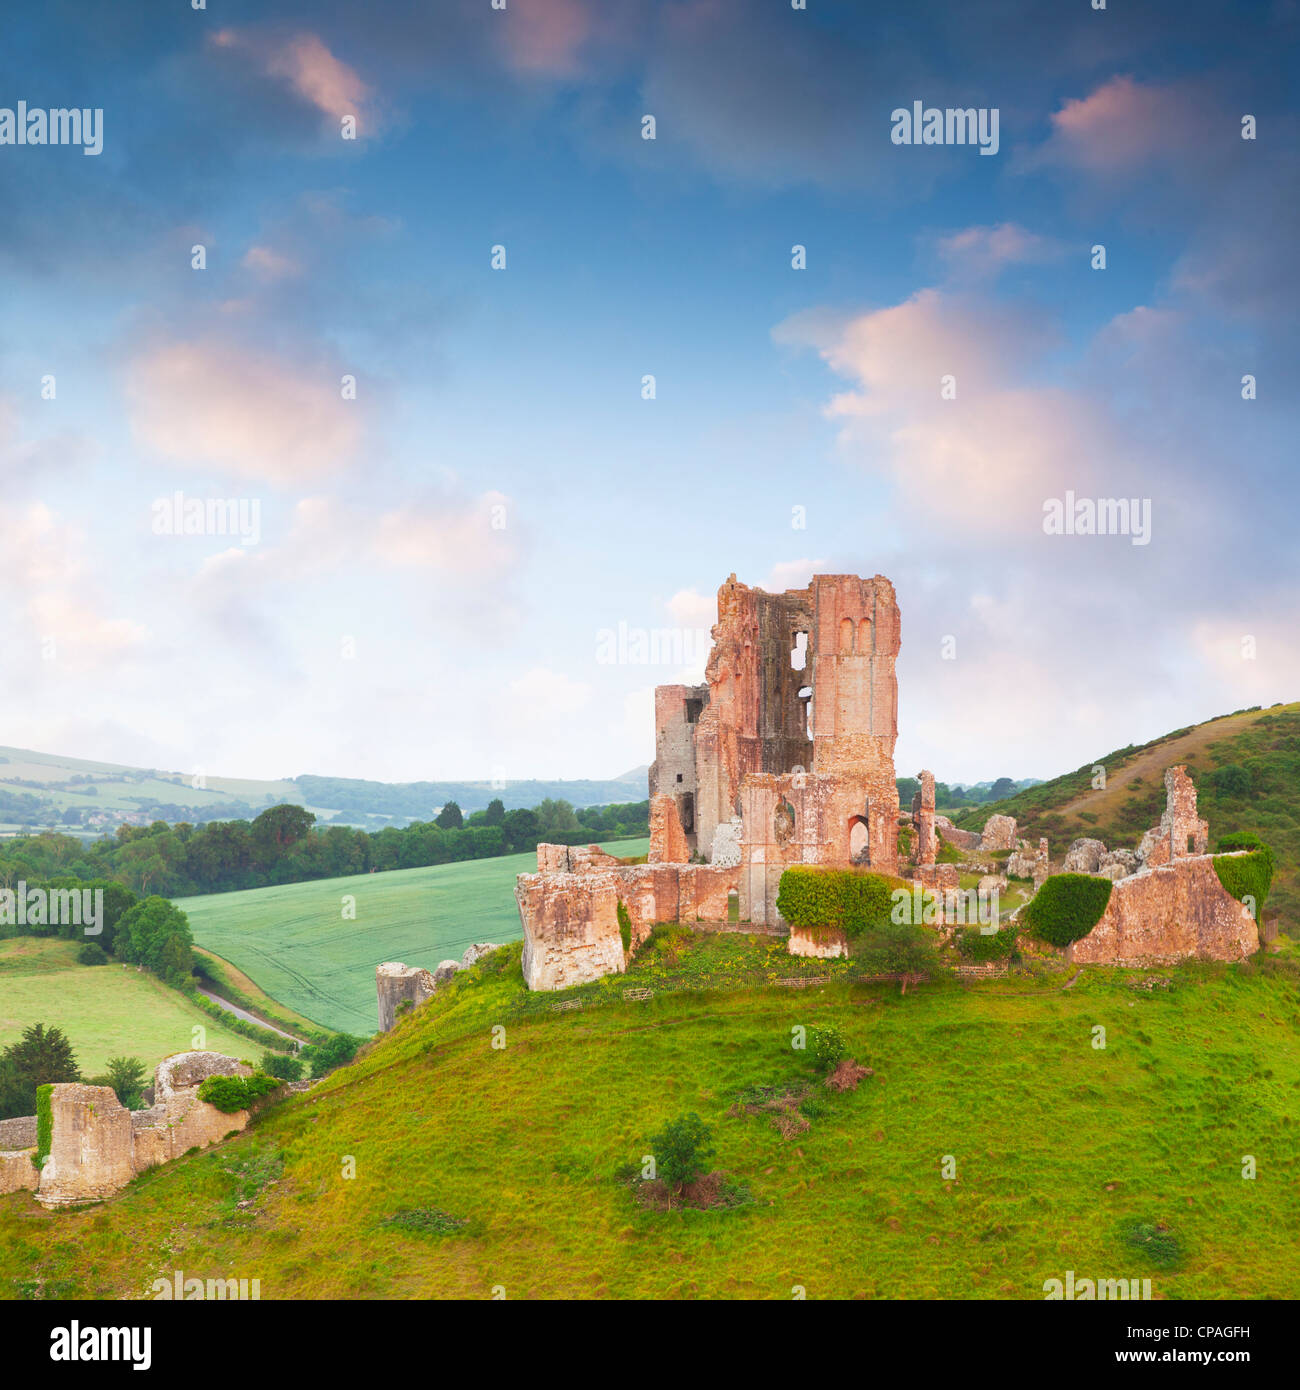 Corfe Castle on its hill above the beautiful Dorset countryside, at sunrise. - Stock Image